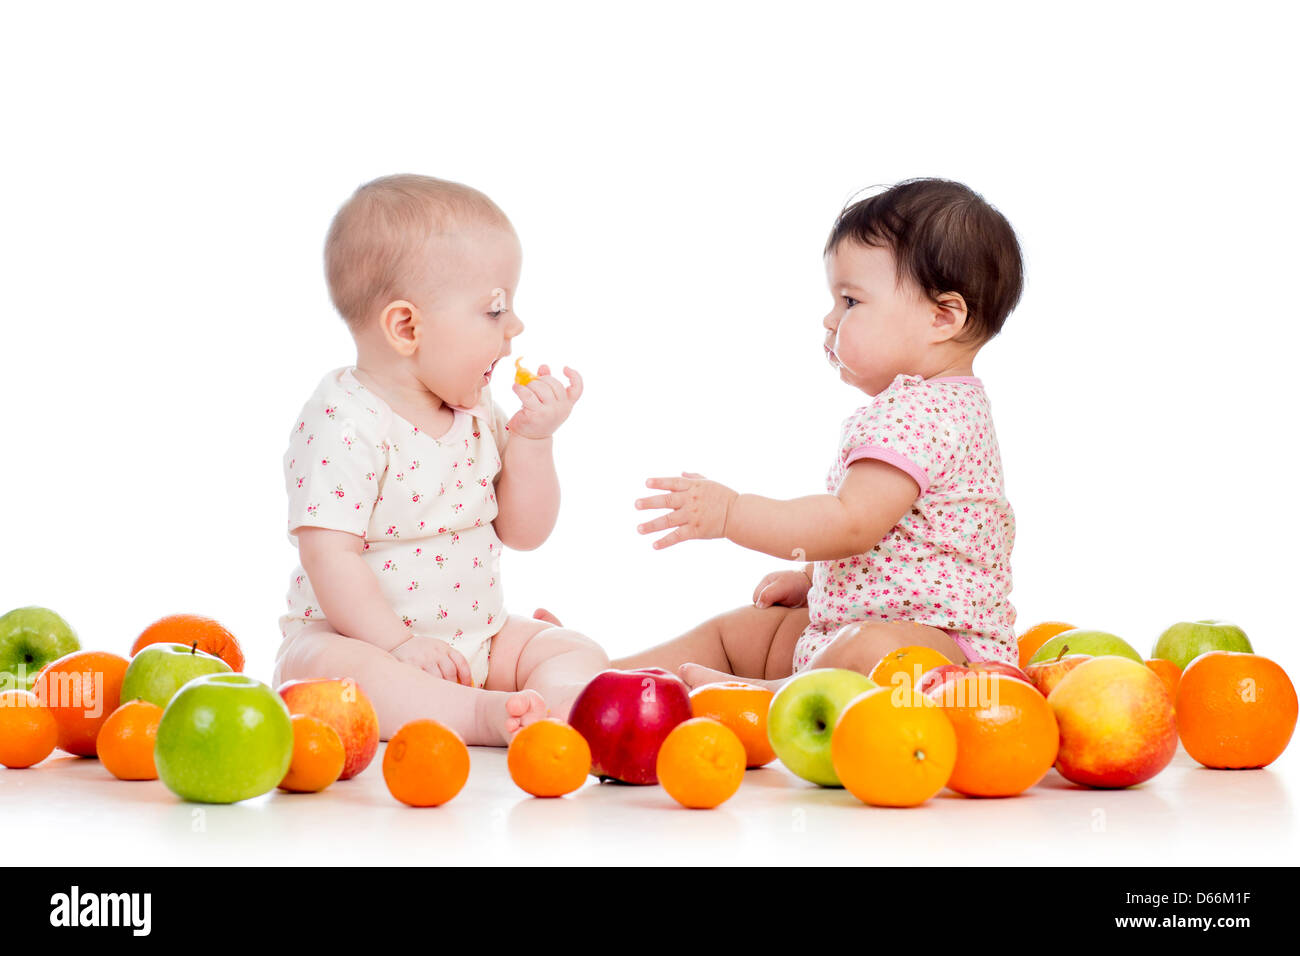 Two children kids eating together healthy food fruits isolated on white background - Stock Image